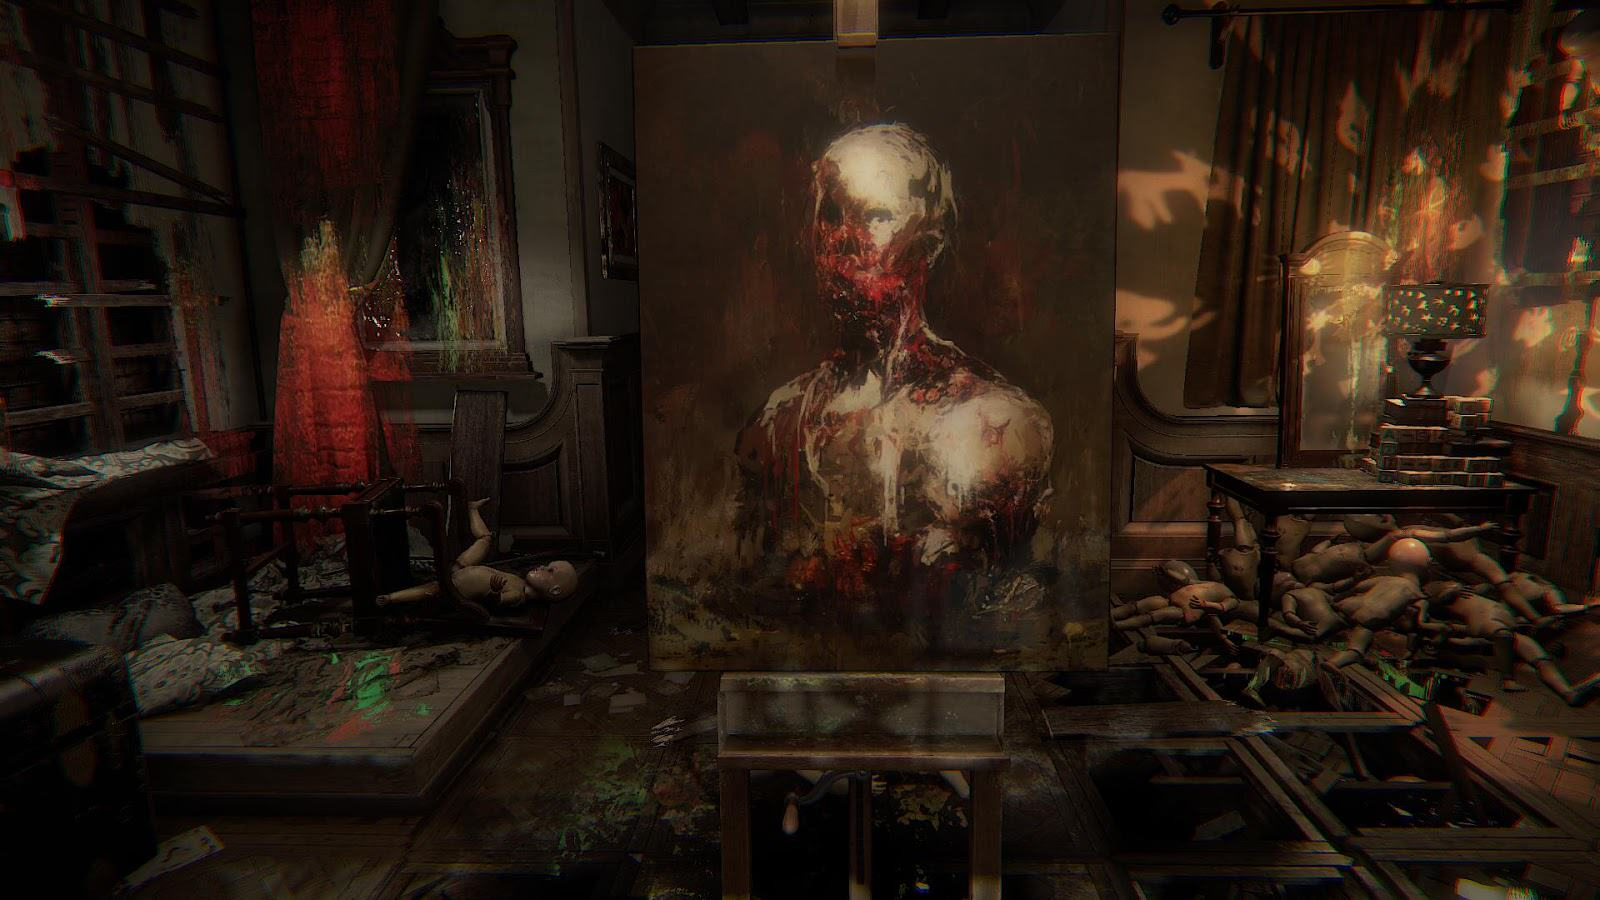 P.T. Inspired Layers Of Fear Gets Release Date, Looks Absolutely Terrifying Layers Of Fear 2015 09 30 20 50 51 21